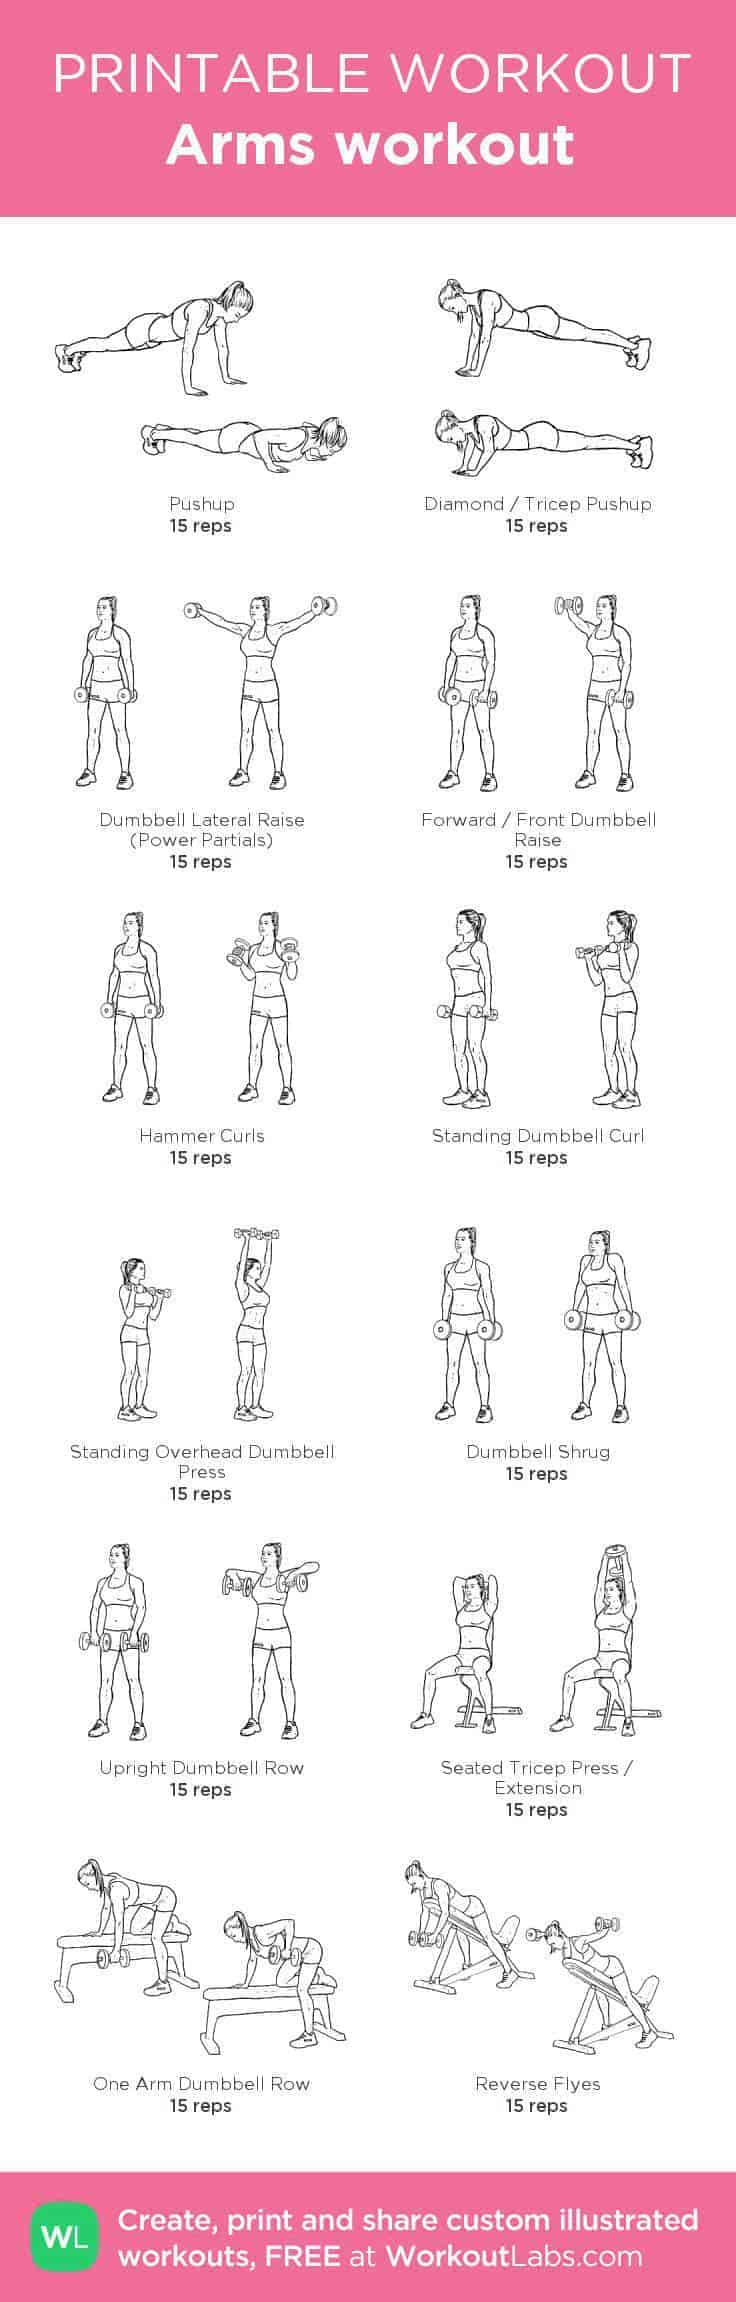 Current image in printable work out routines